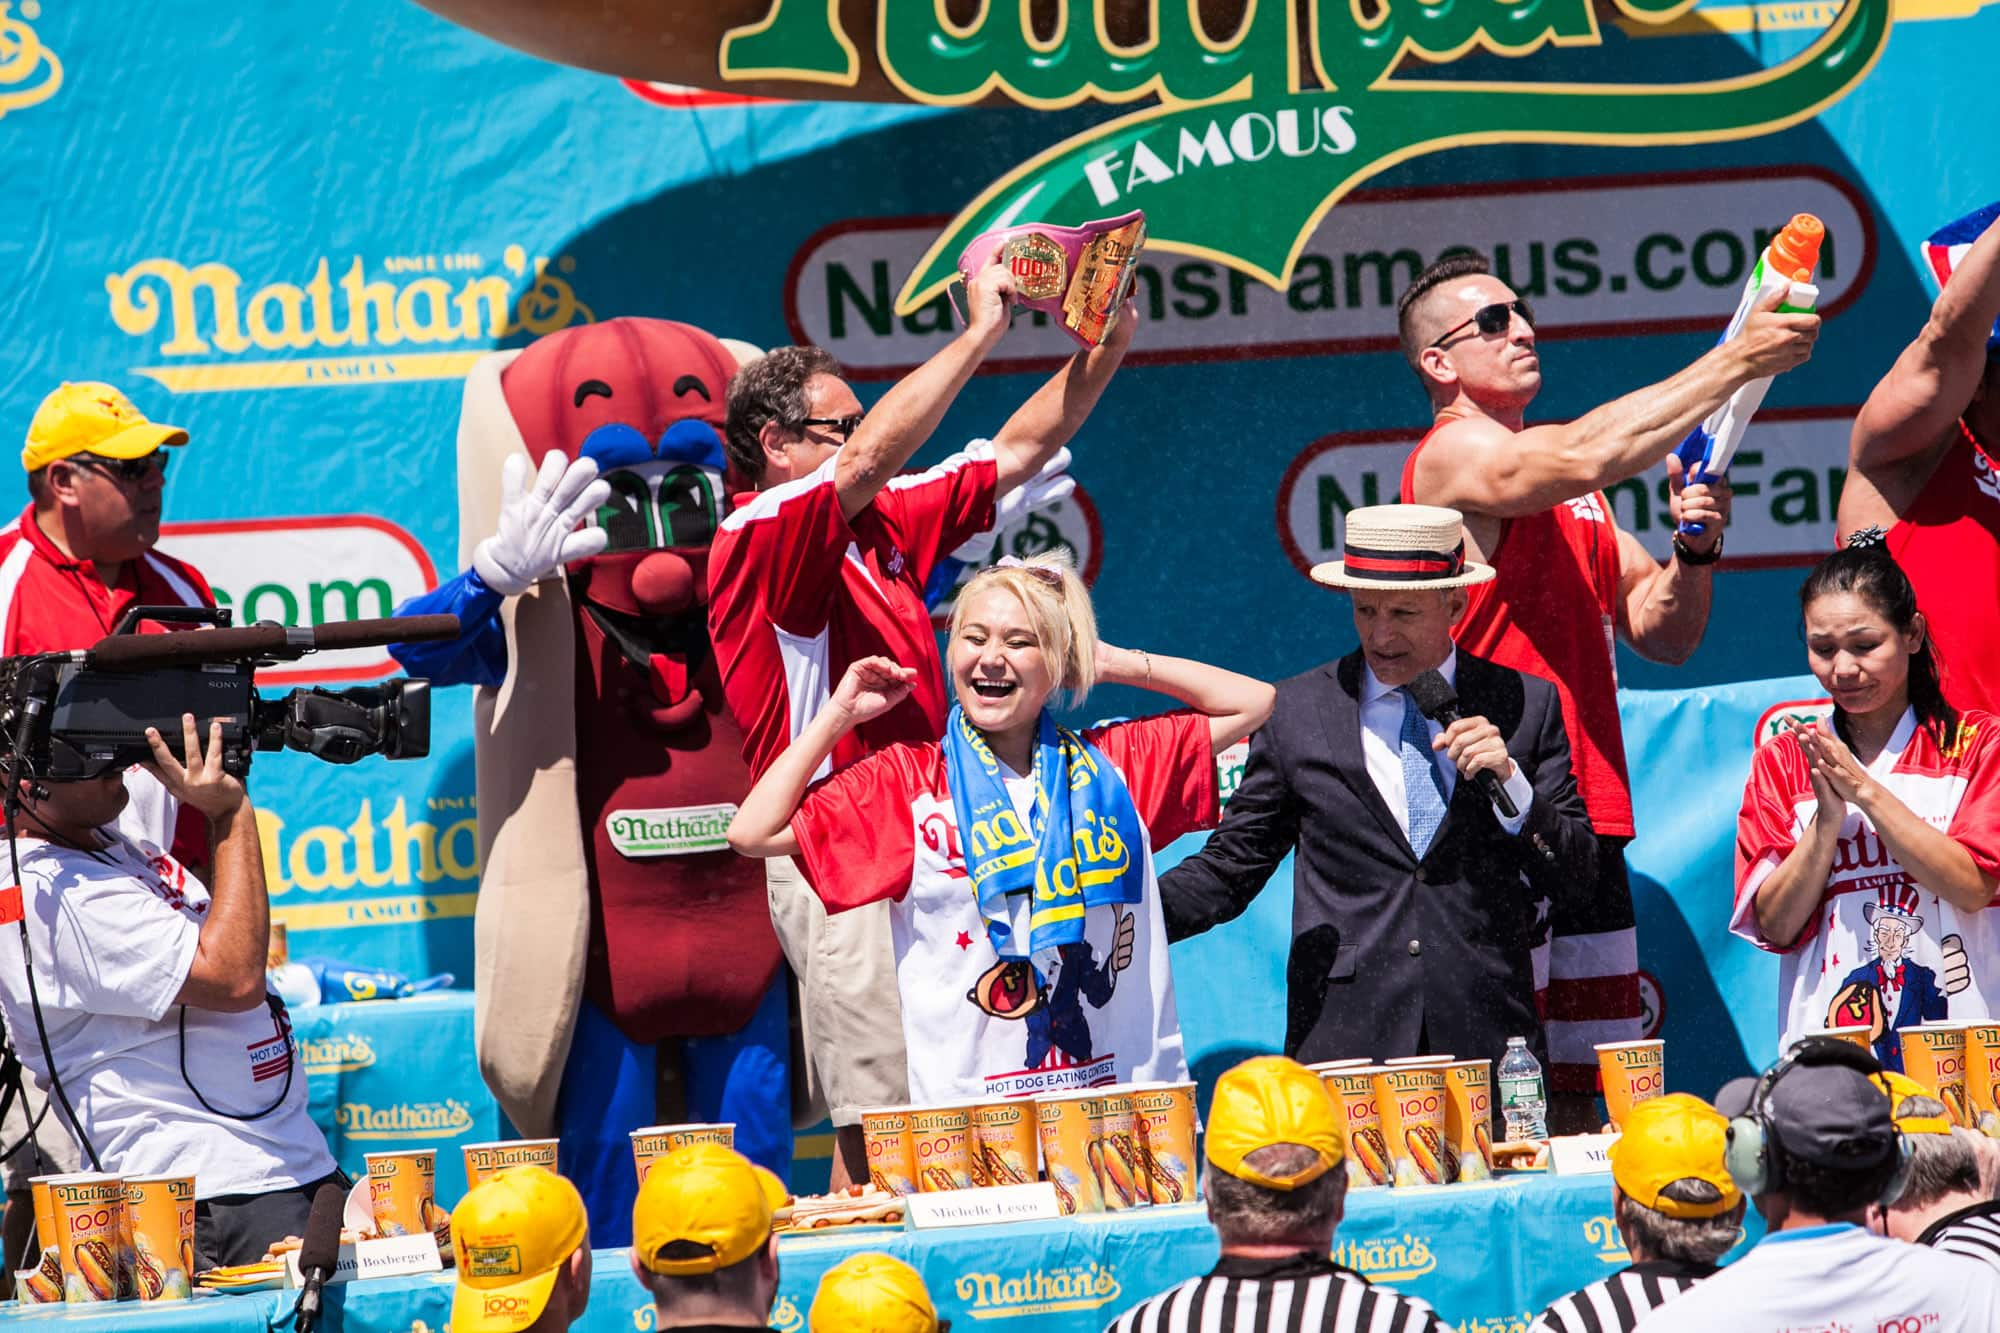 Miki Sudo wins the women's competition at the 2016 Nathan's Famous Fourth of July hot dog eating contest at Coney Island.